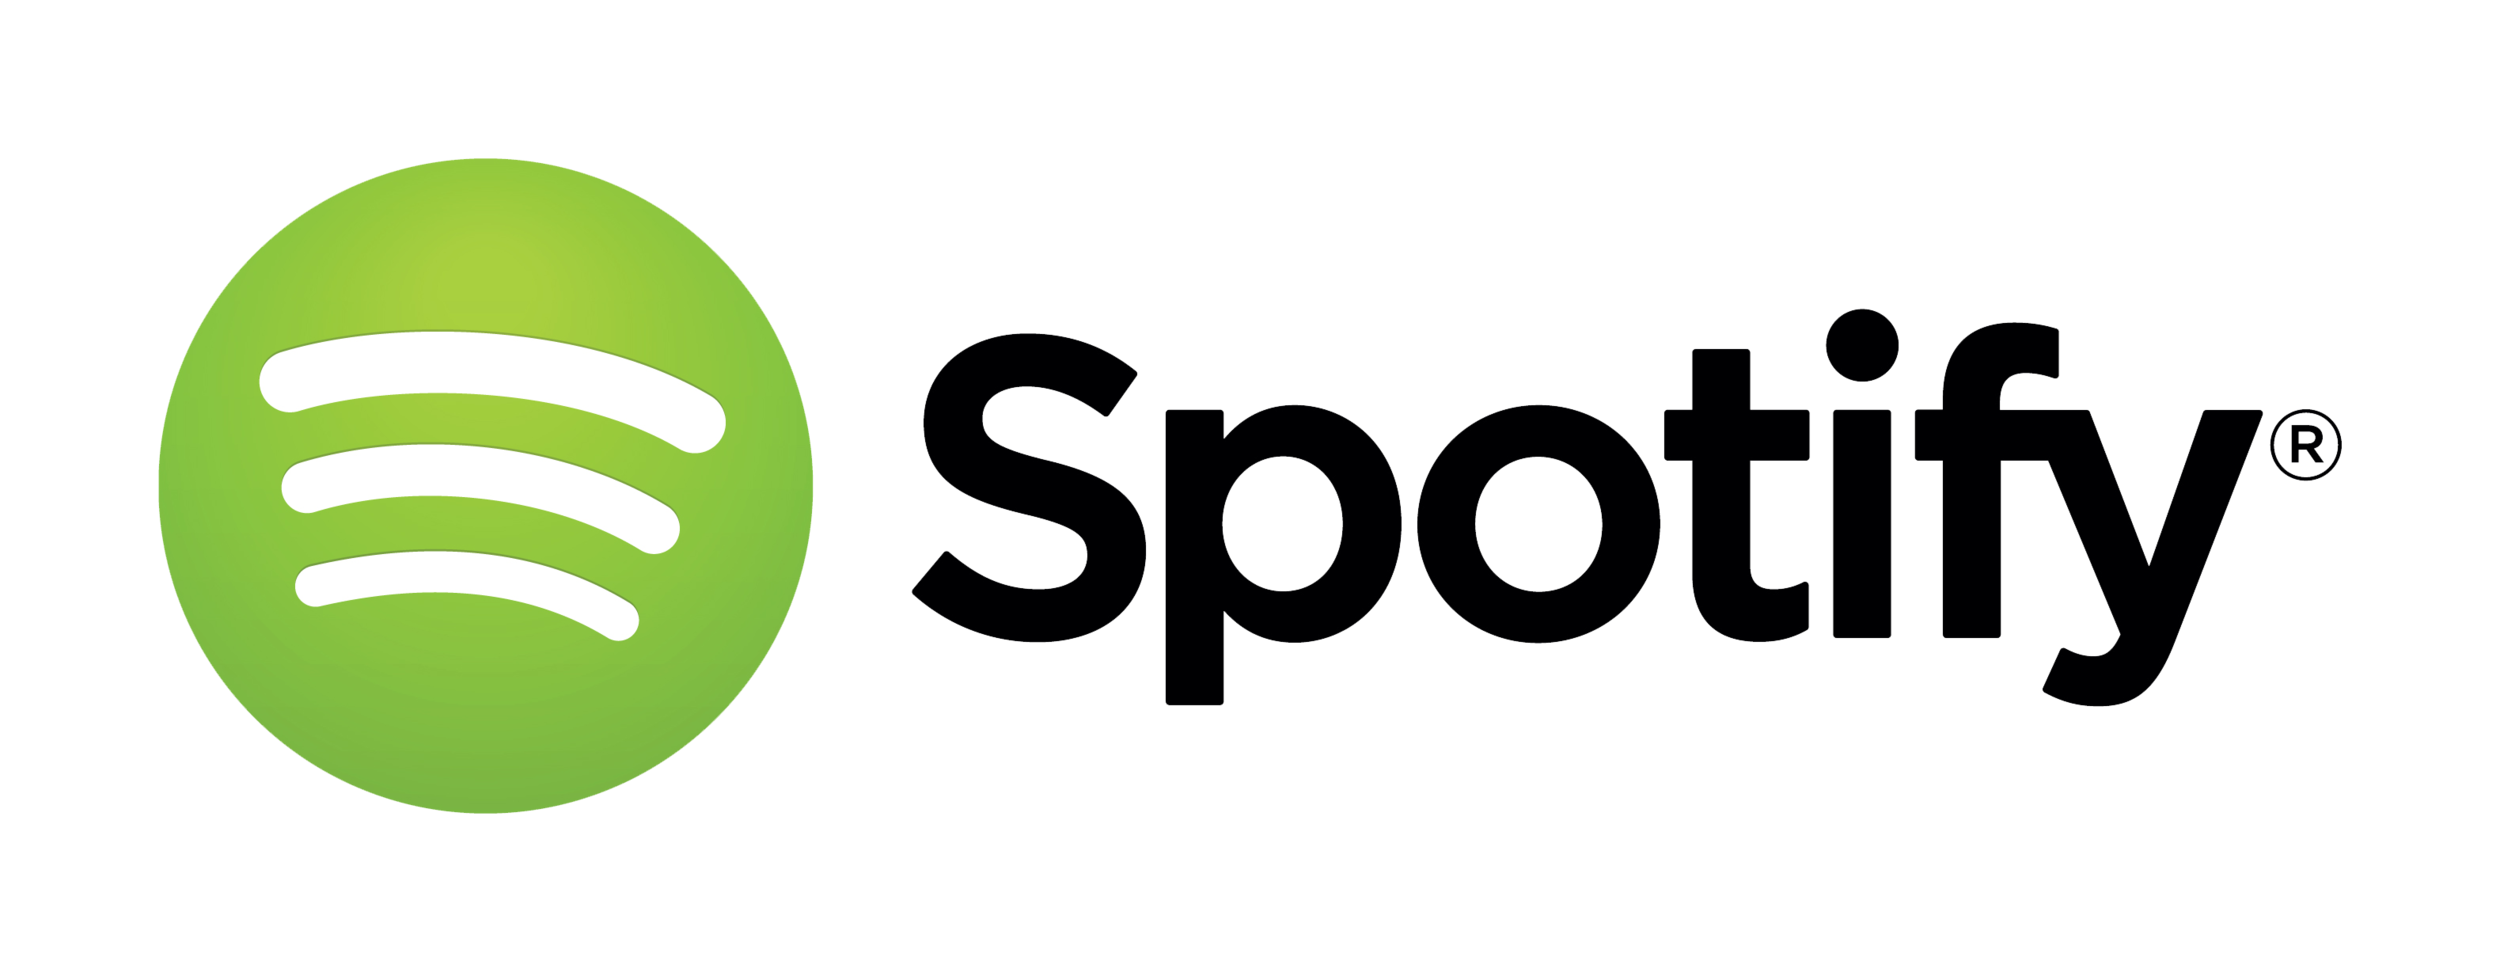 spotify-logo-primary-horizontal-light-background-rgb.png